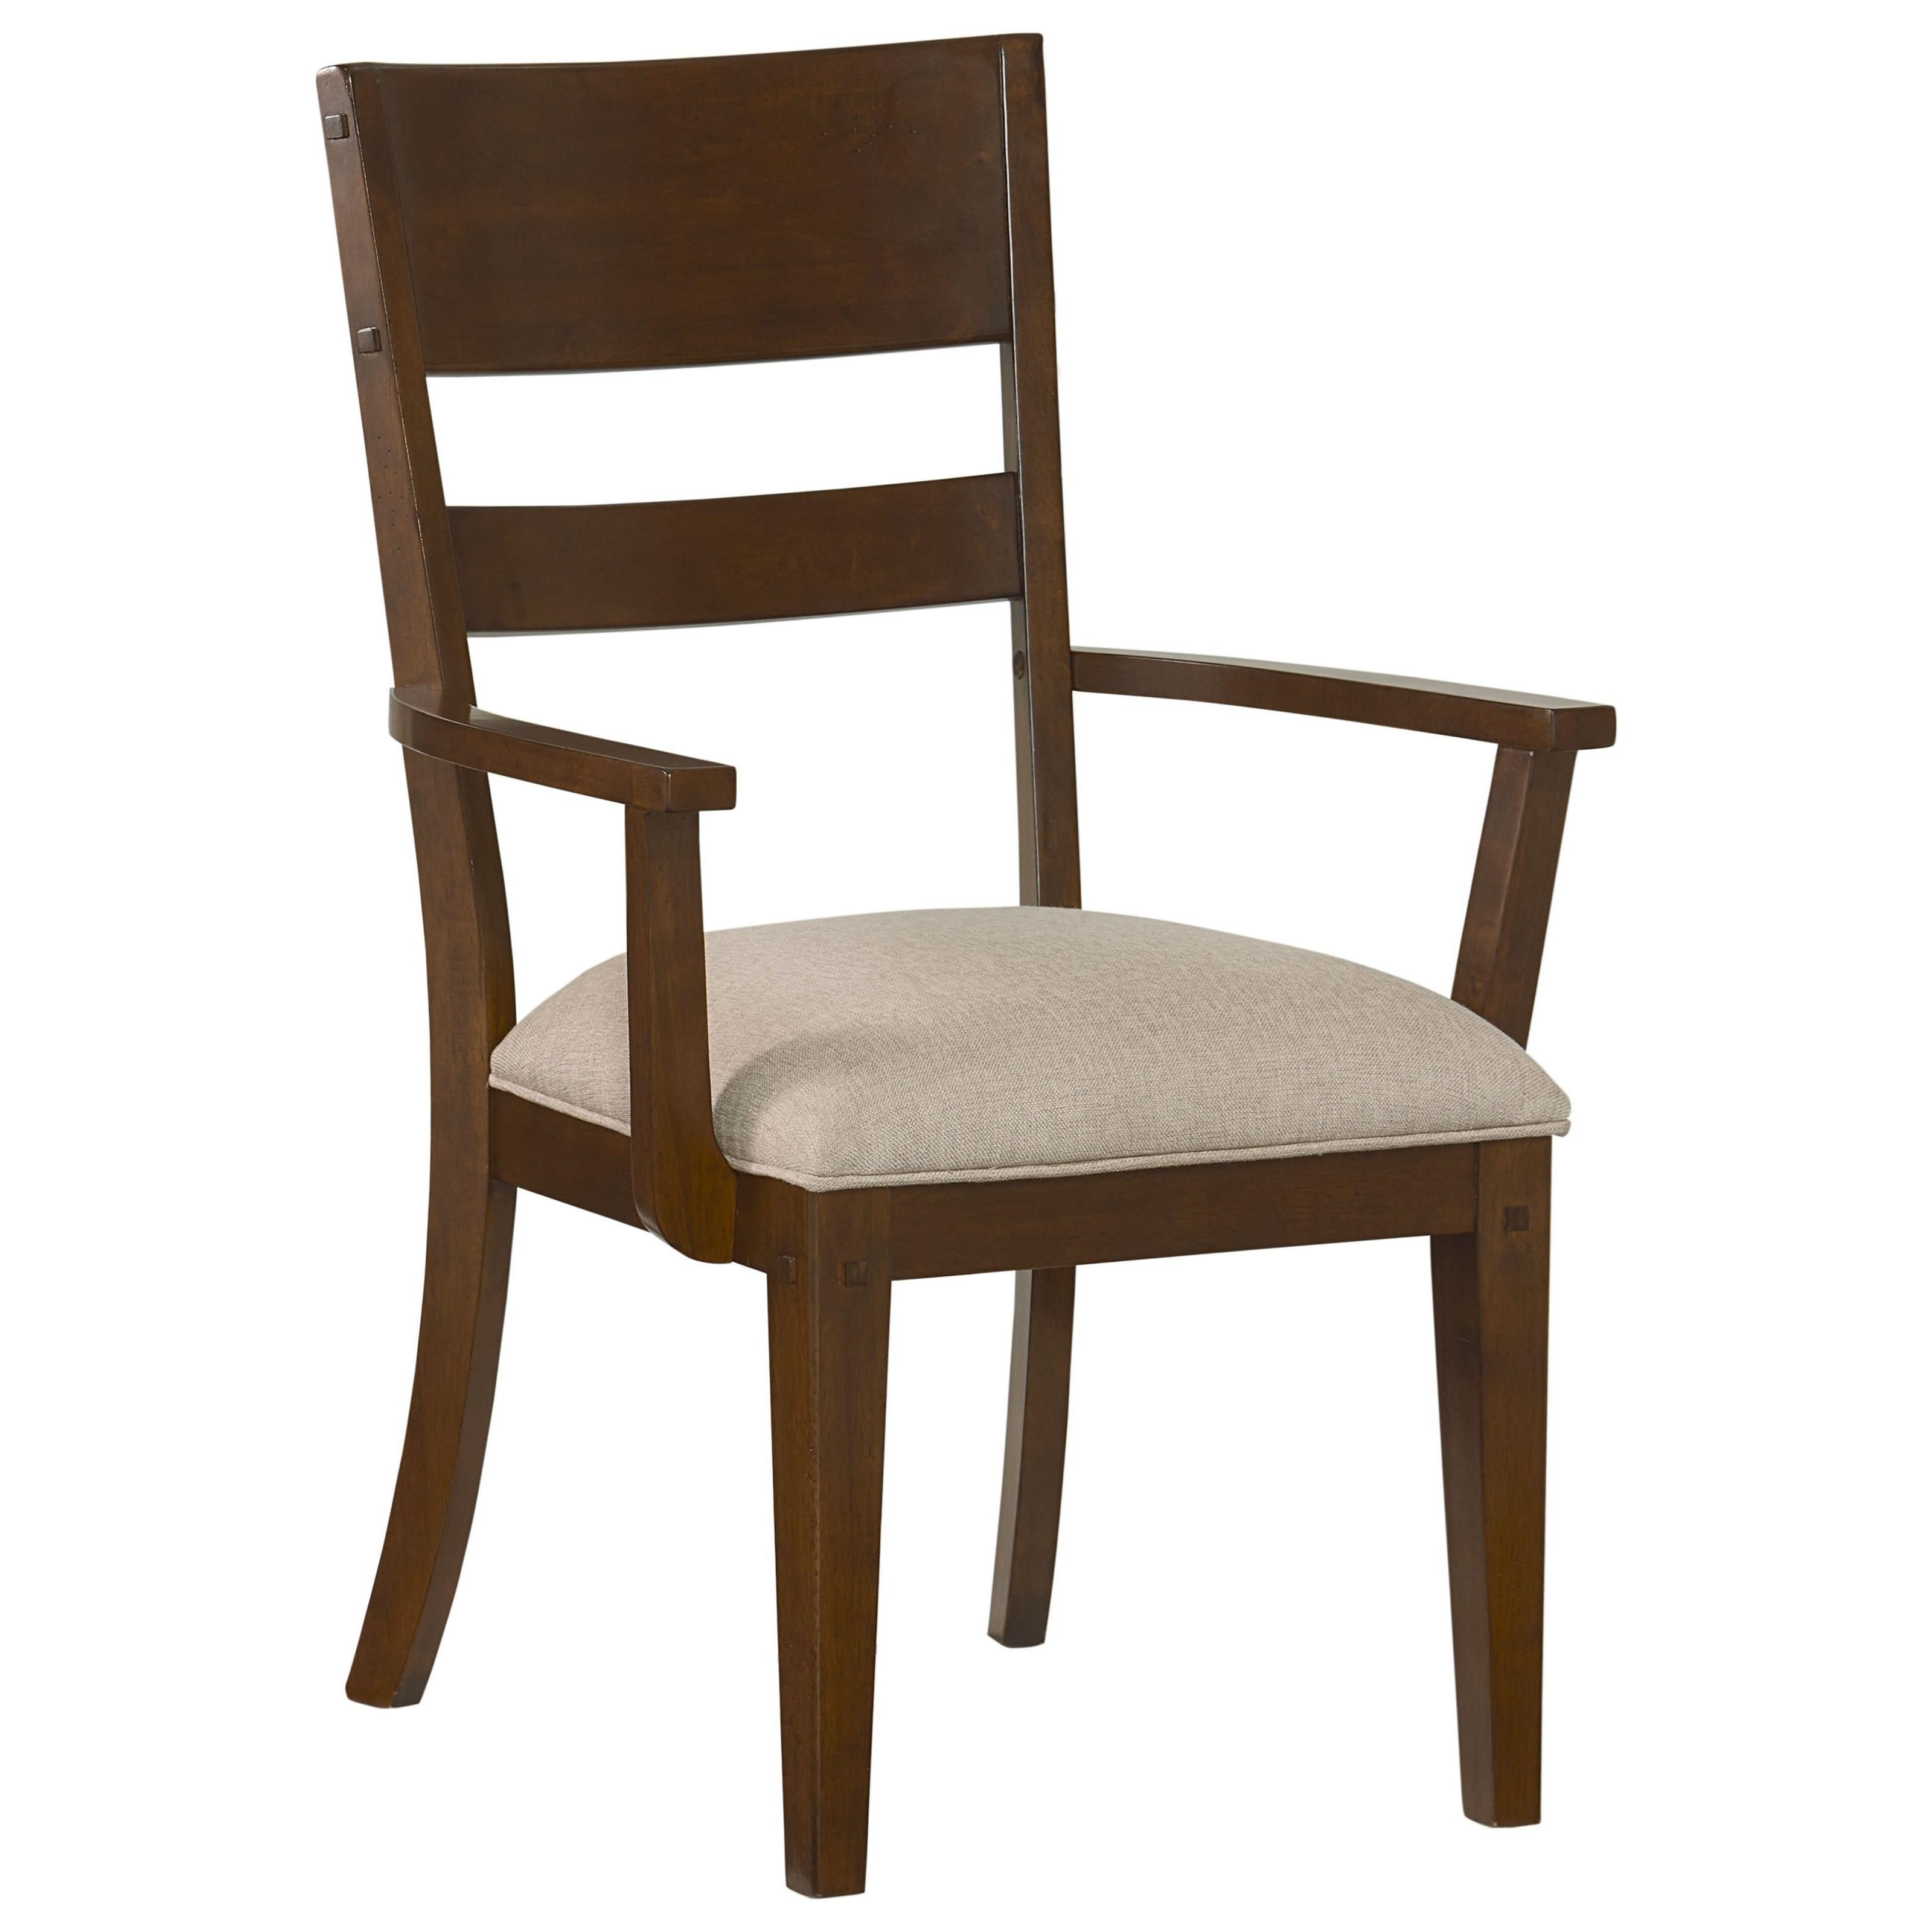 Standard Furniture Cameron Arm Chair - Item Number: 14305